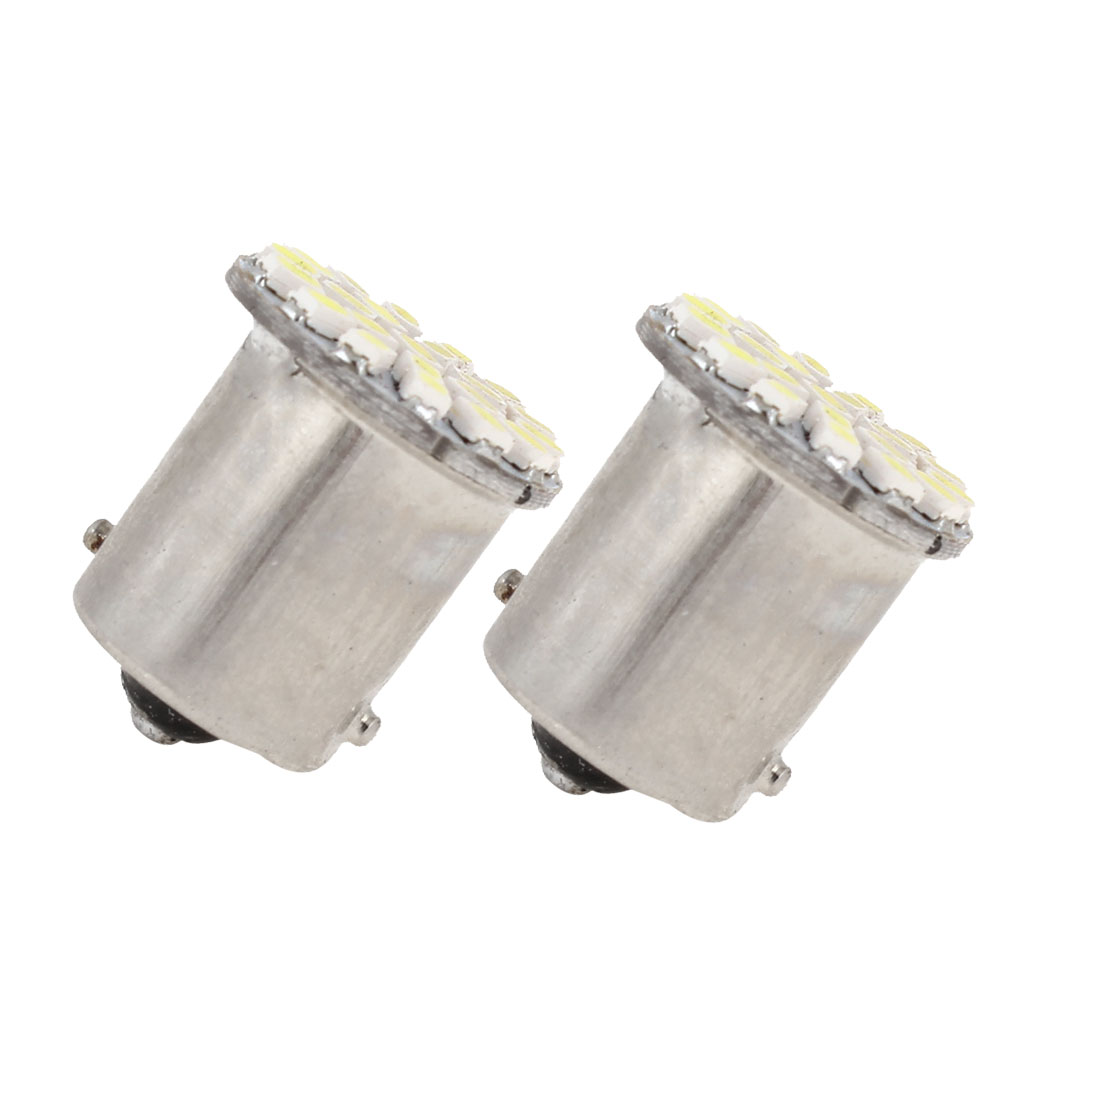 2 Pcs White 22 LED 1156 BA15S 1206 SMD Car Indicator Backup Tail Turn Light 1073 1093 1129